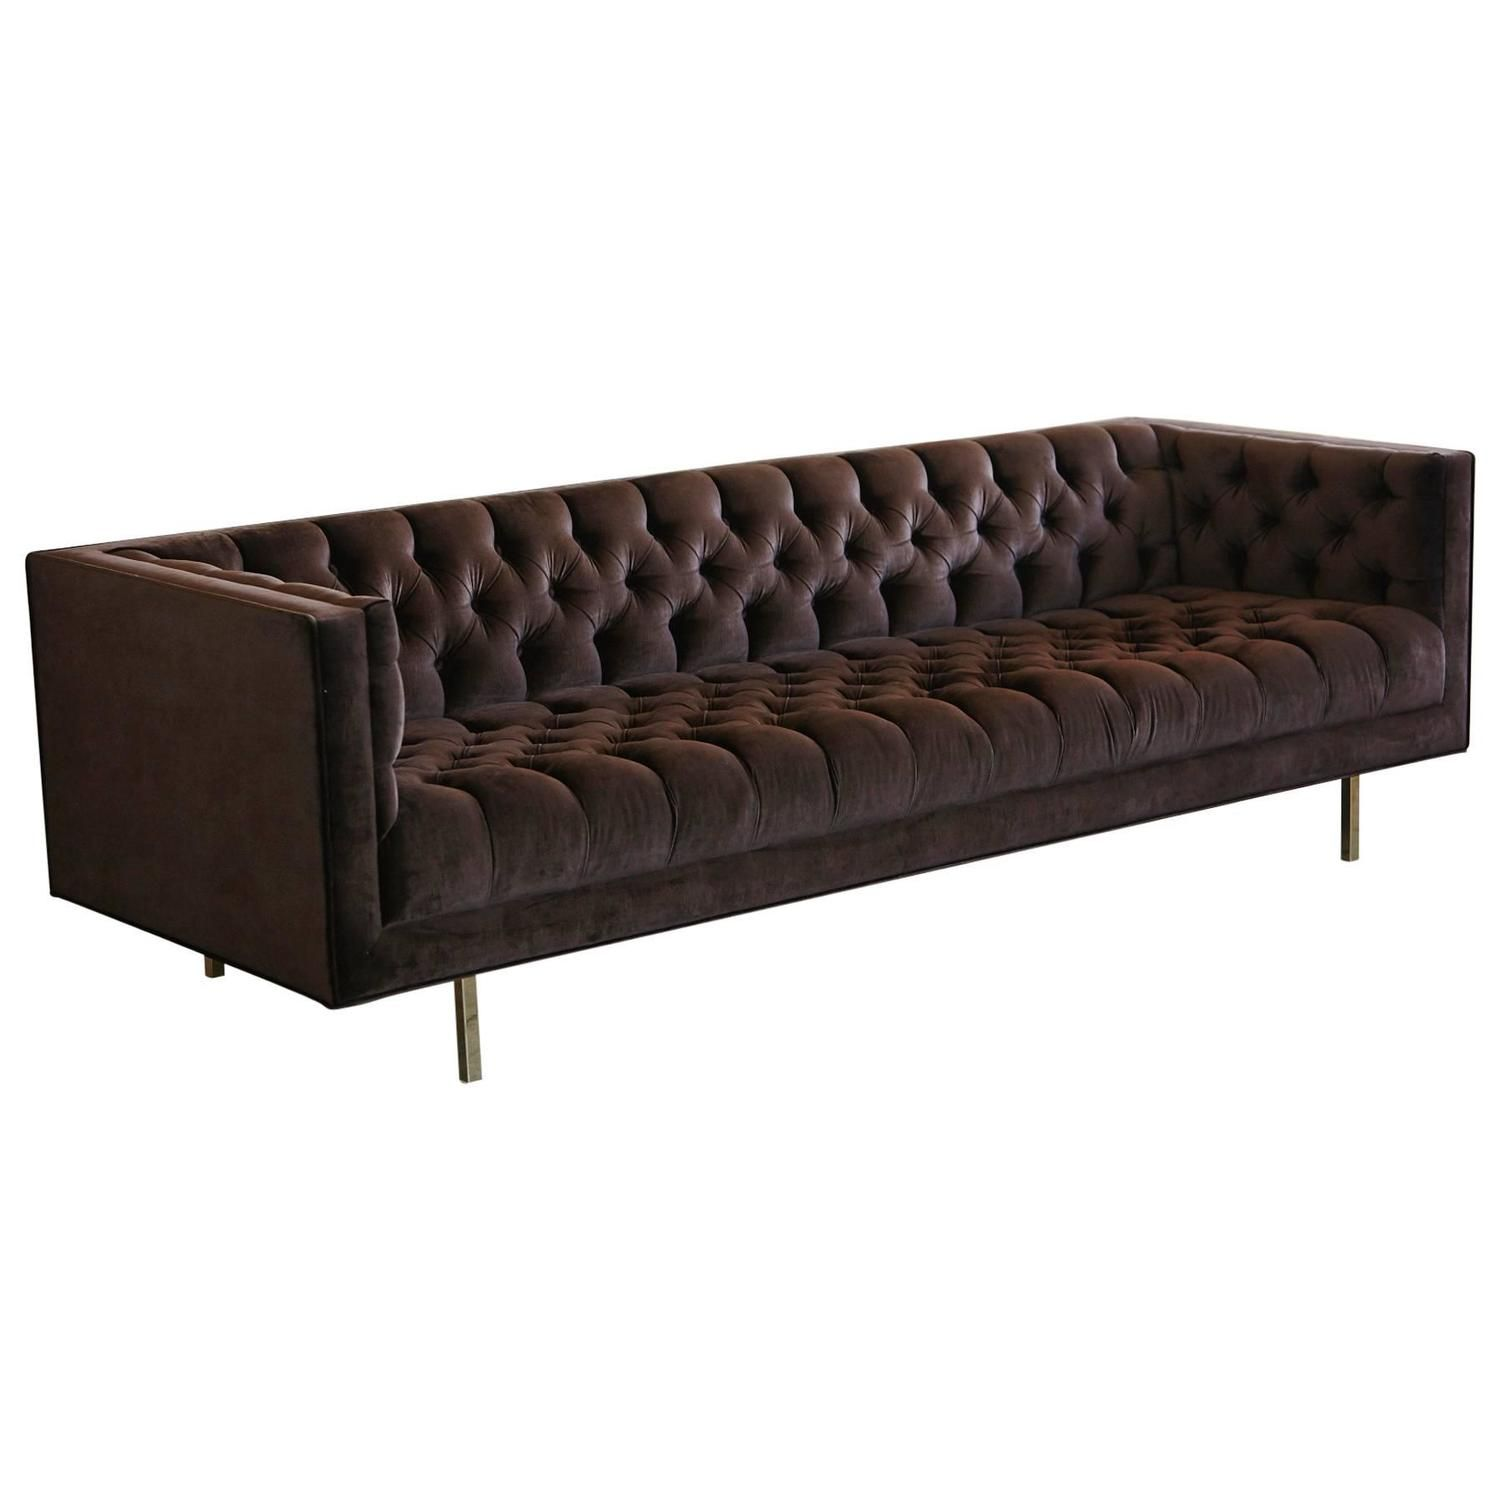 Modern Deeply Button Tufted Velvet Custom Tuxedo Sofa By Las Venus